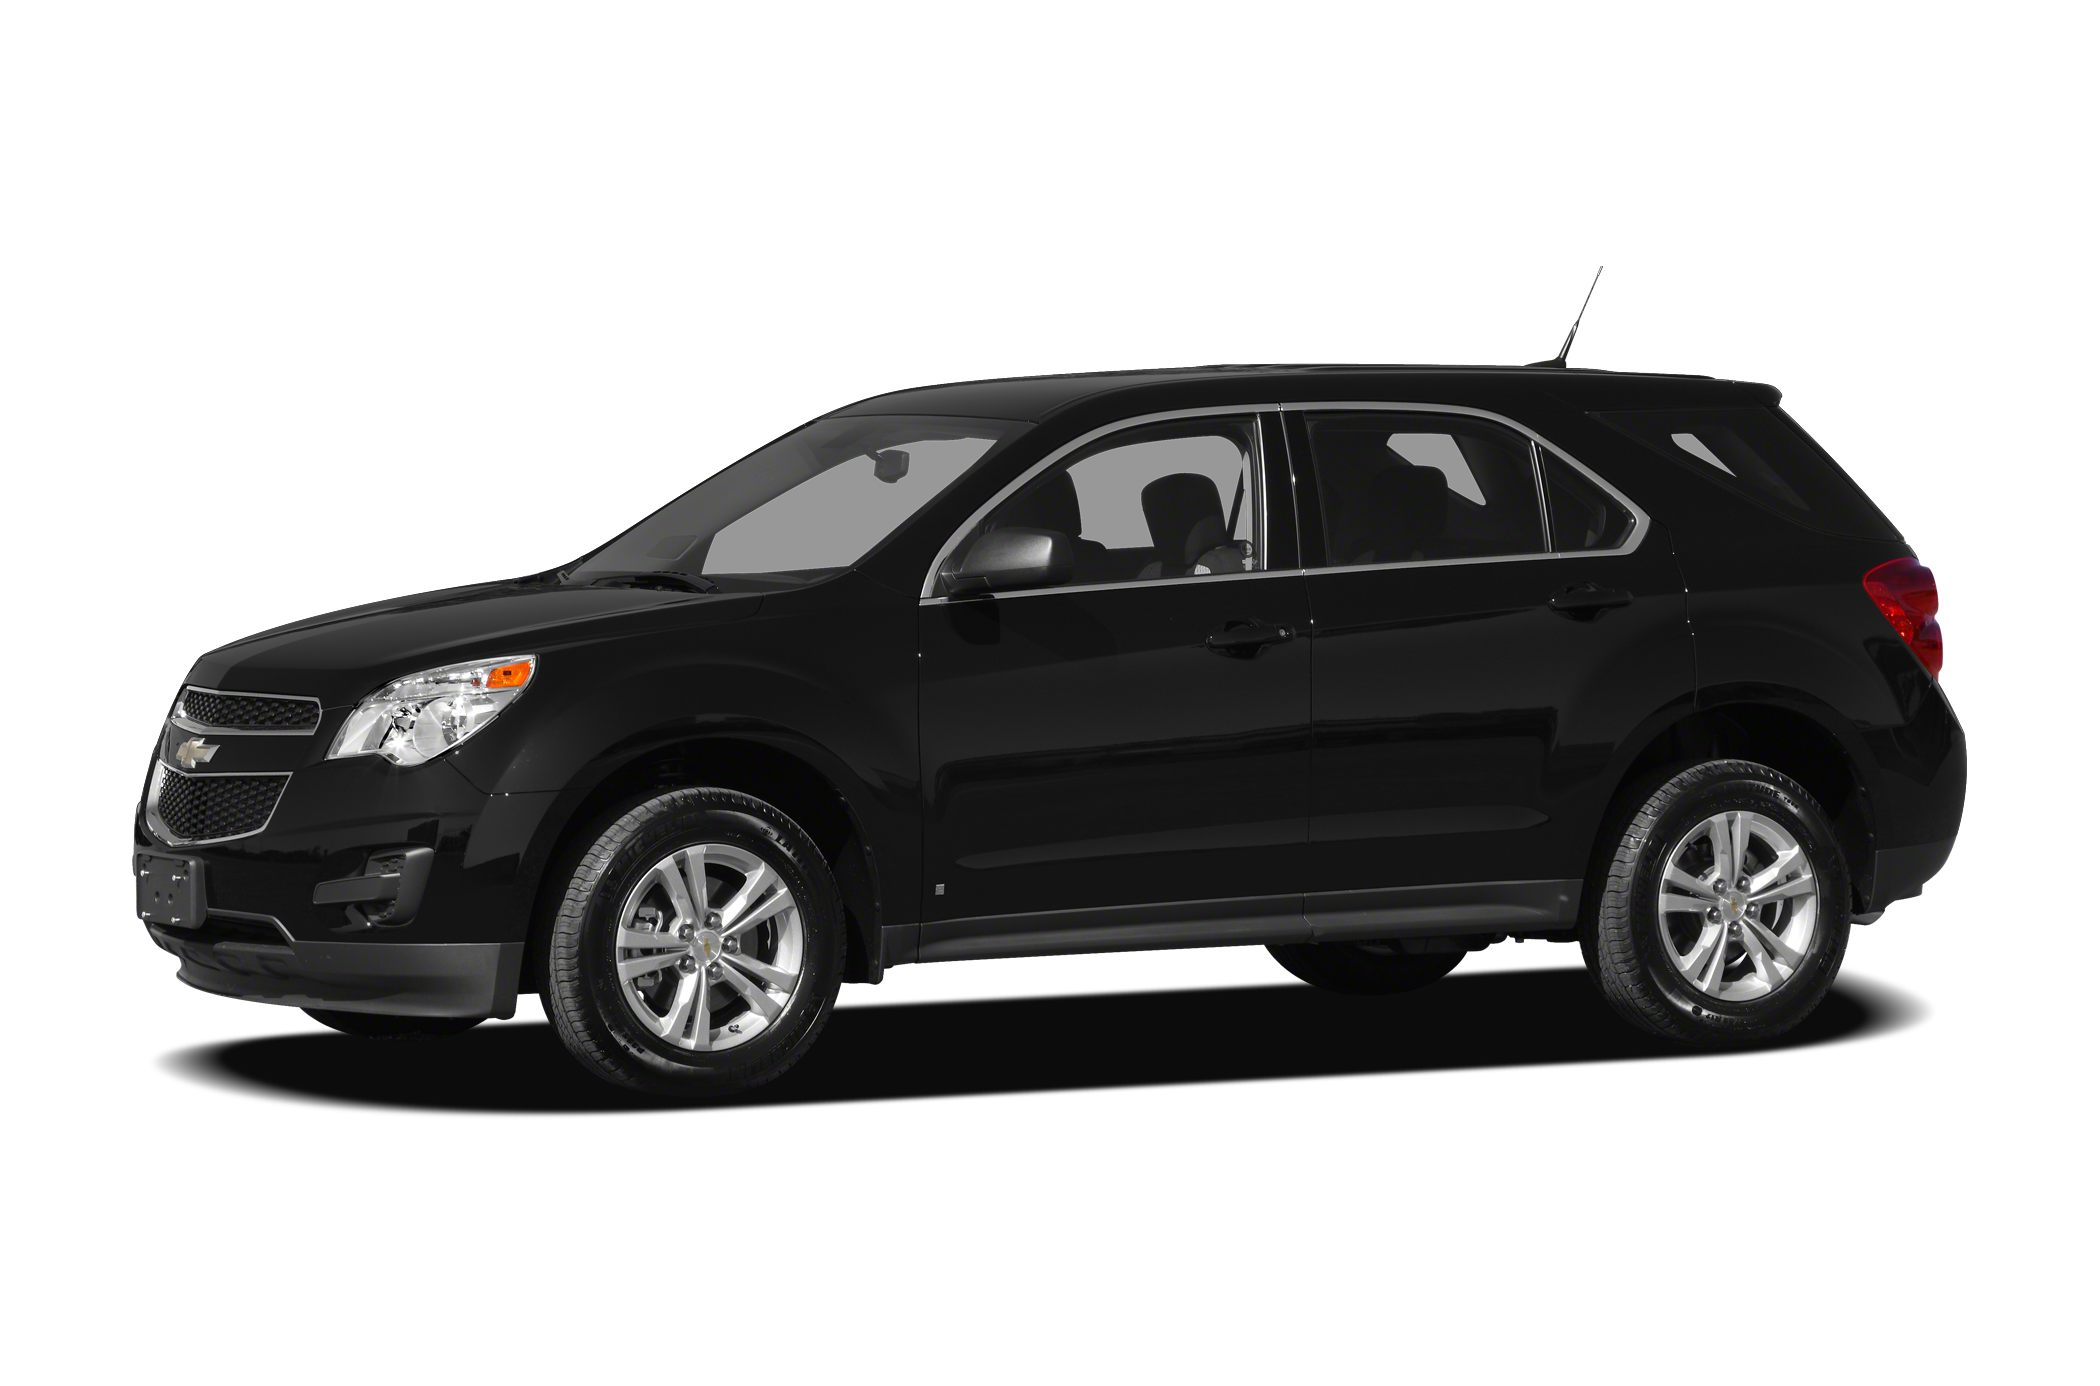 2012 Chevrolet Equinox LS SUV for sale in Norwich for $20,995 with 15,449 miles